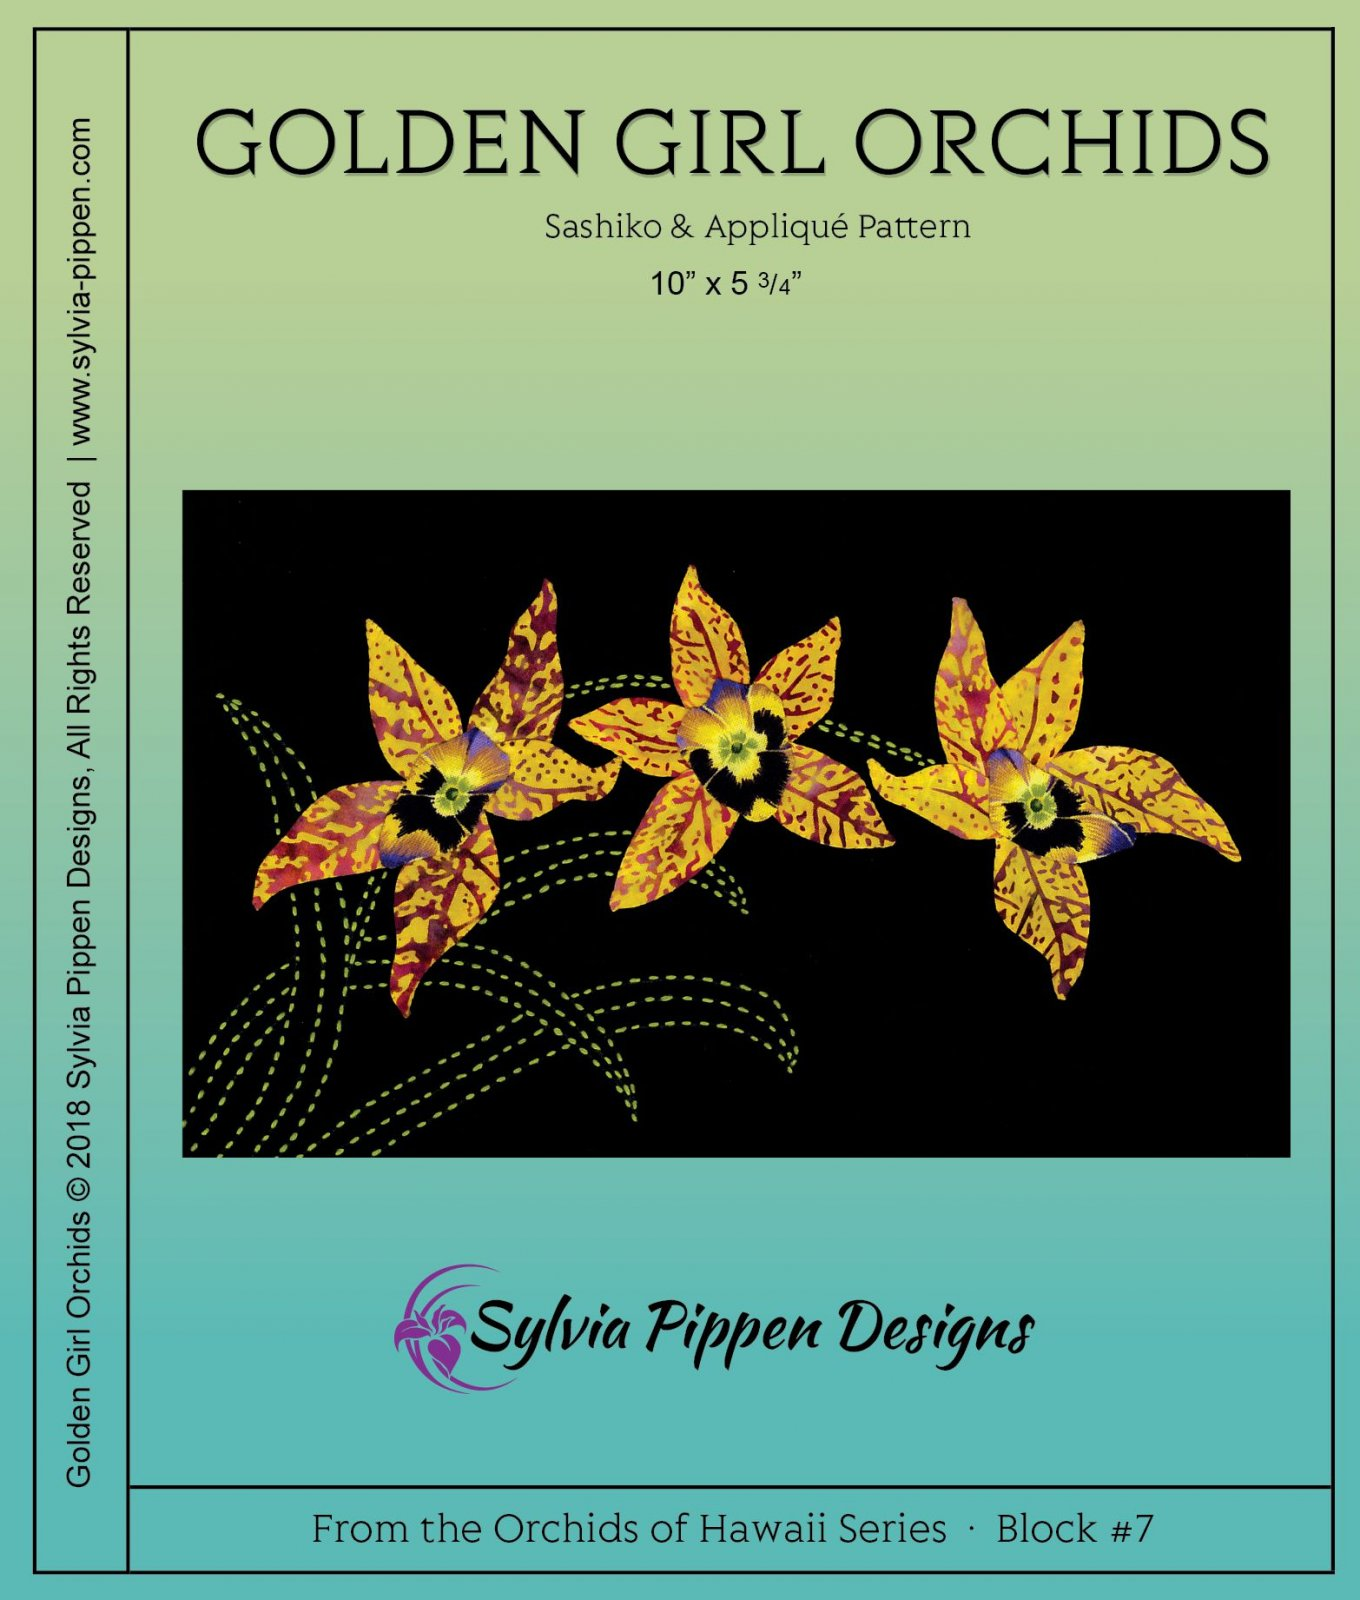 Golden Girls Orchids Sashiko & Applique Pattern from Orchids of Hawaii Series